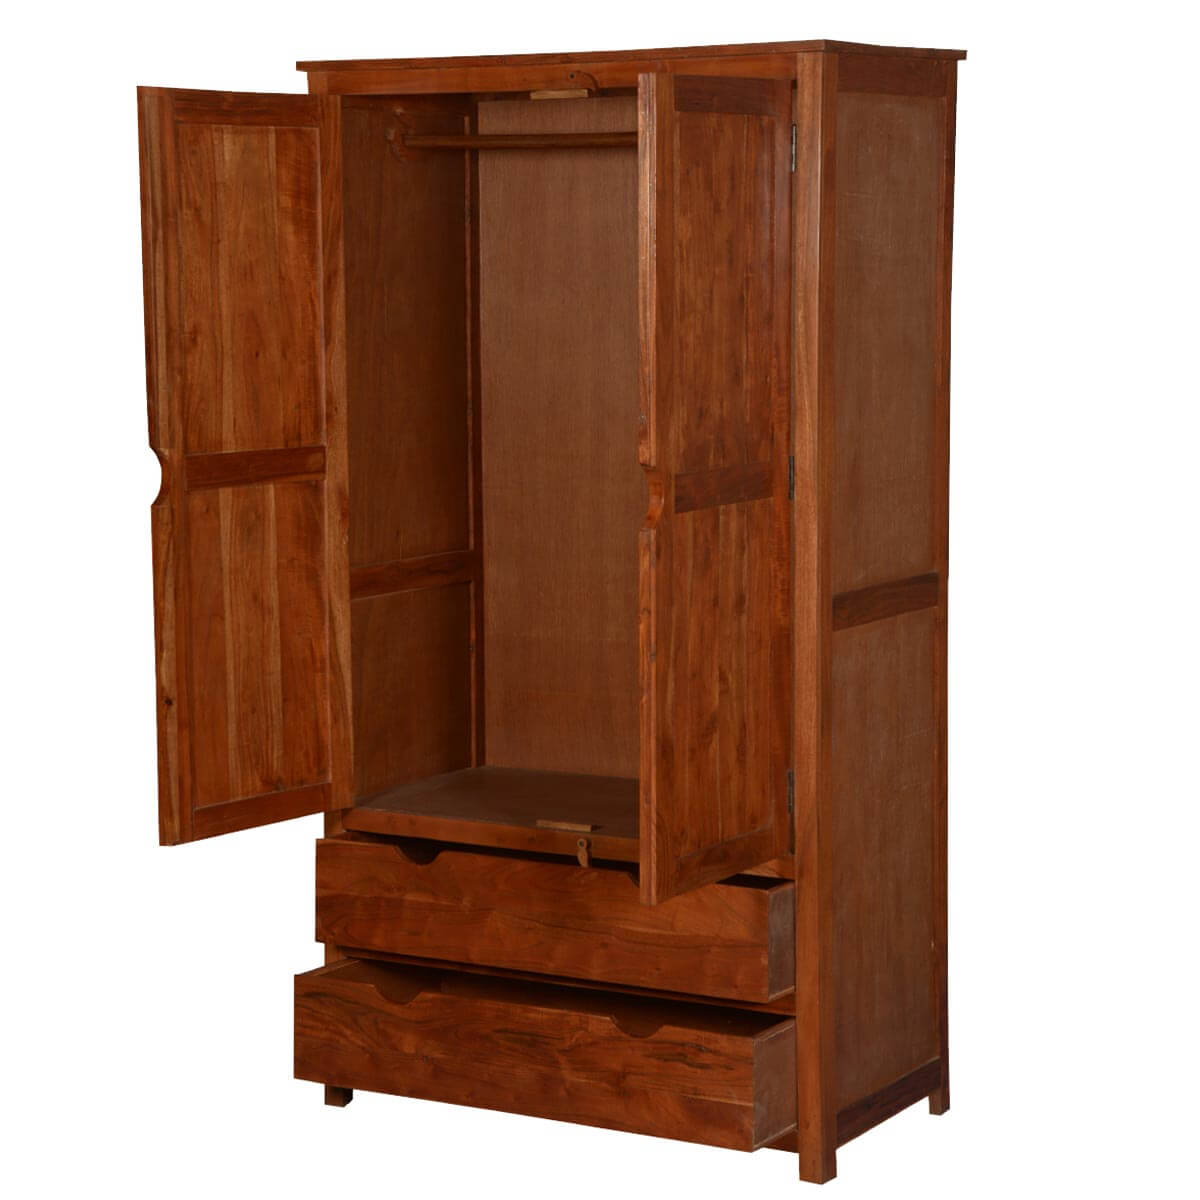 Santa Fe Contemporary Acacia Wood Wardrobe Armoire Cabinet